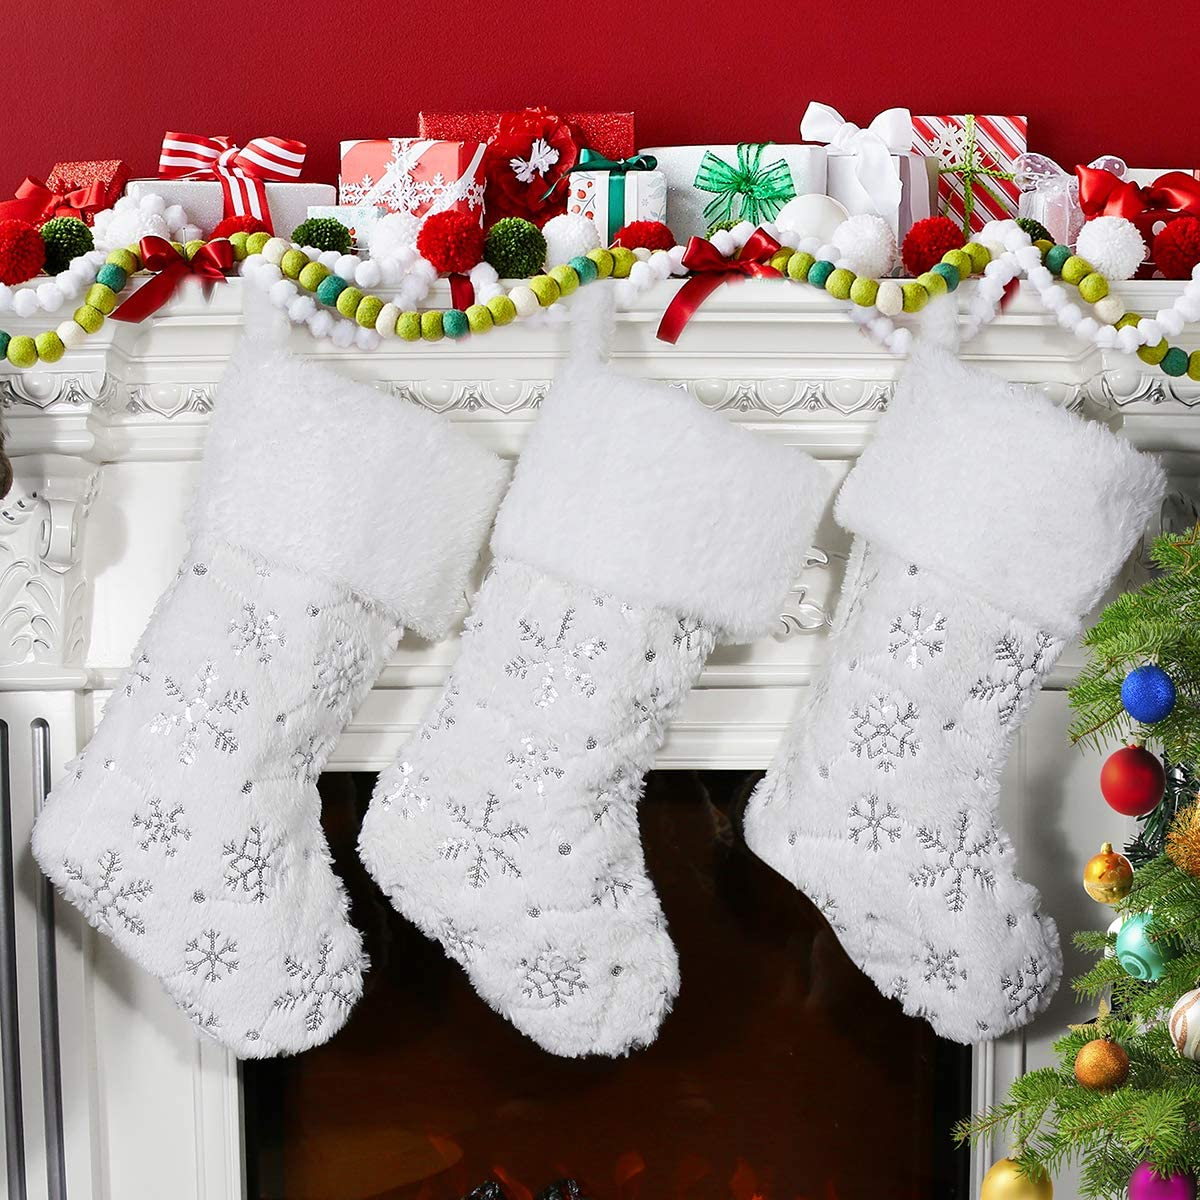 Large Faux Fur Xmas Stocking with Silver Sequin Snowflakes for Family Meriwoods Christmas Stockings 4 Pack 19 Inch Country Rustic Personalized Holiday Indoor Decorations Cream White